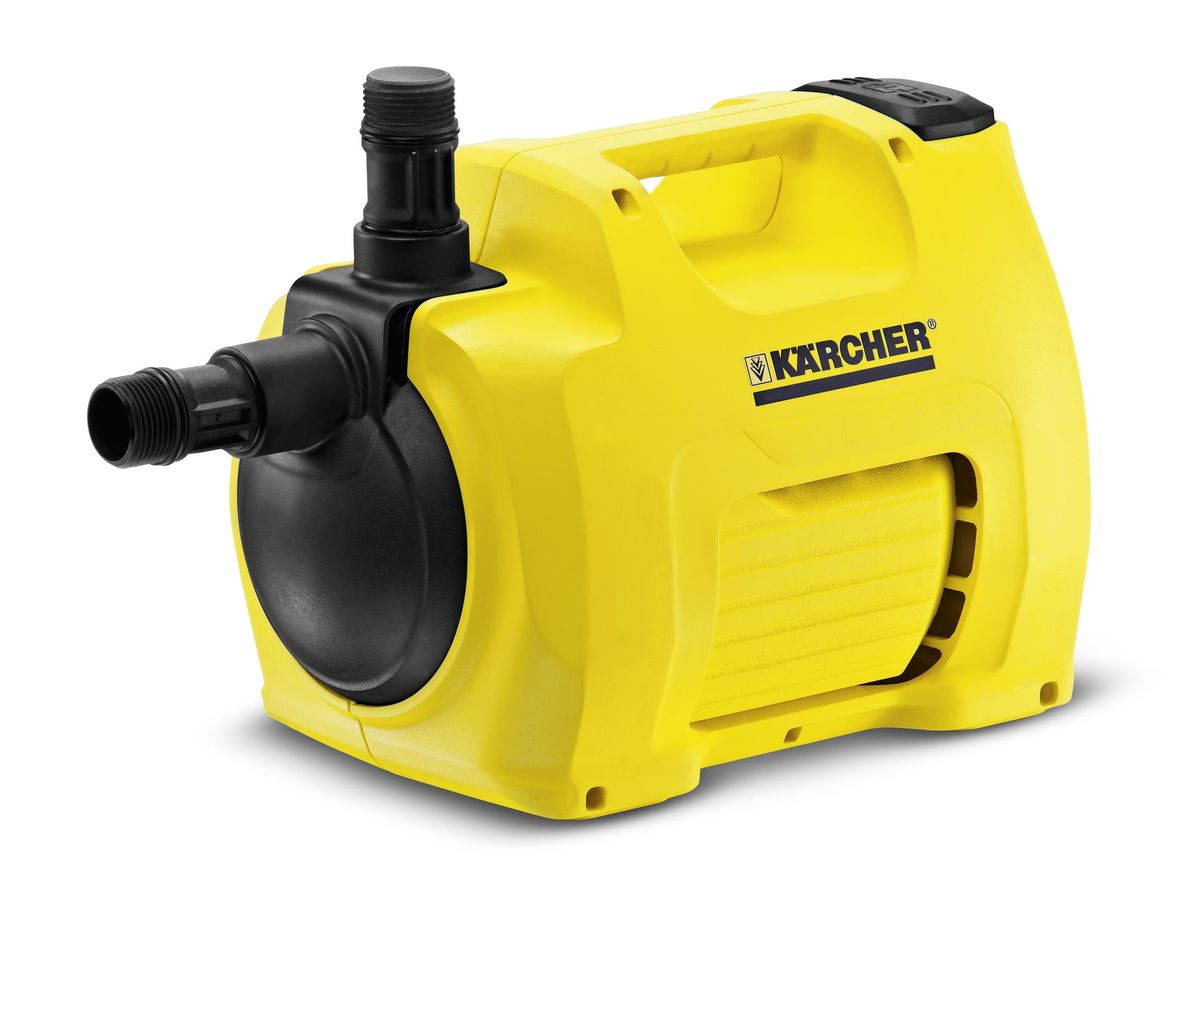 Насос для дома и сада Karcher BP 3 Garden 1.645-351.0 поверхностный насос karcher bp 4 home and garden ecologic 1 645 354